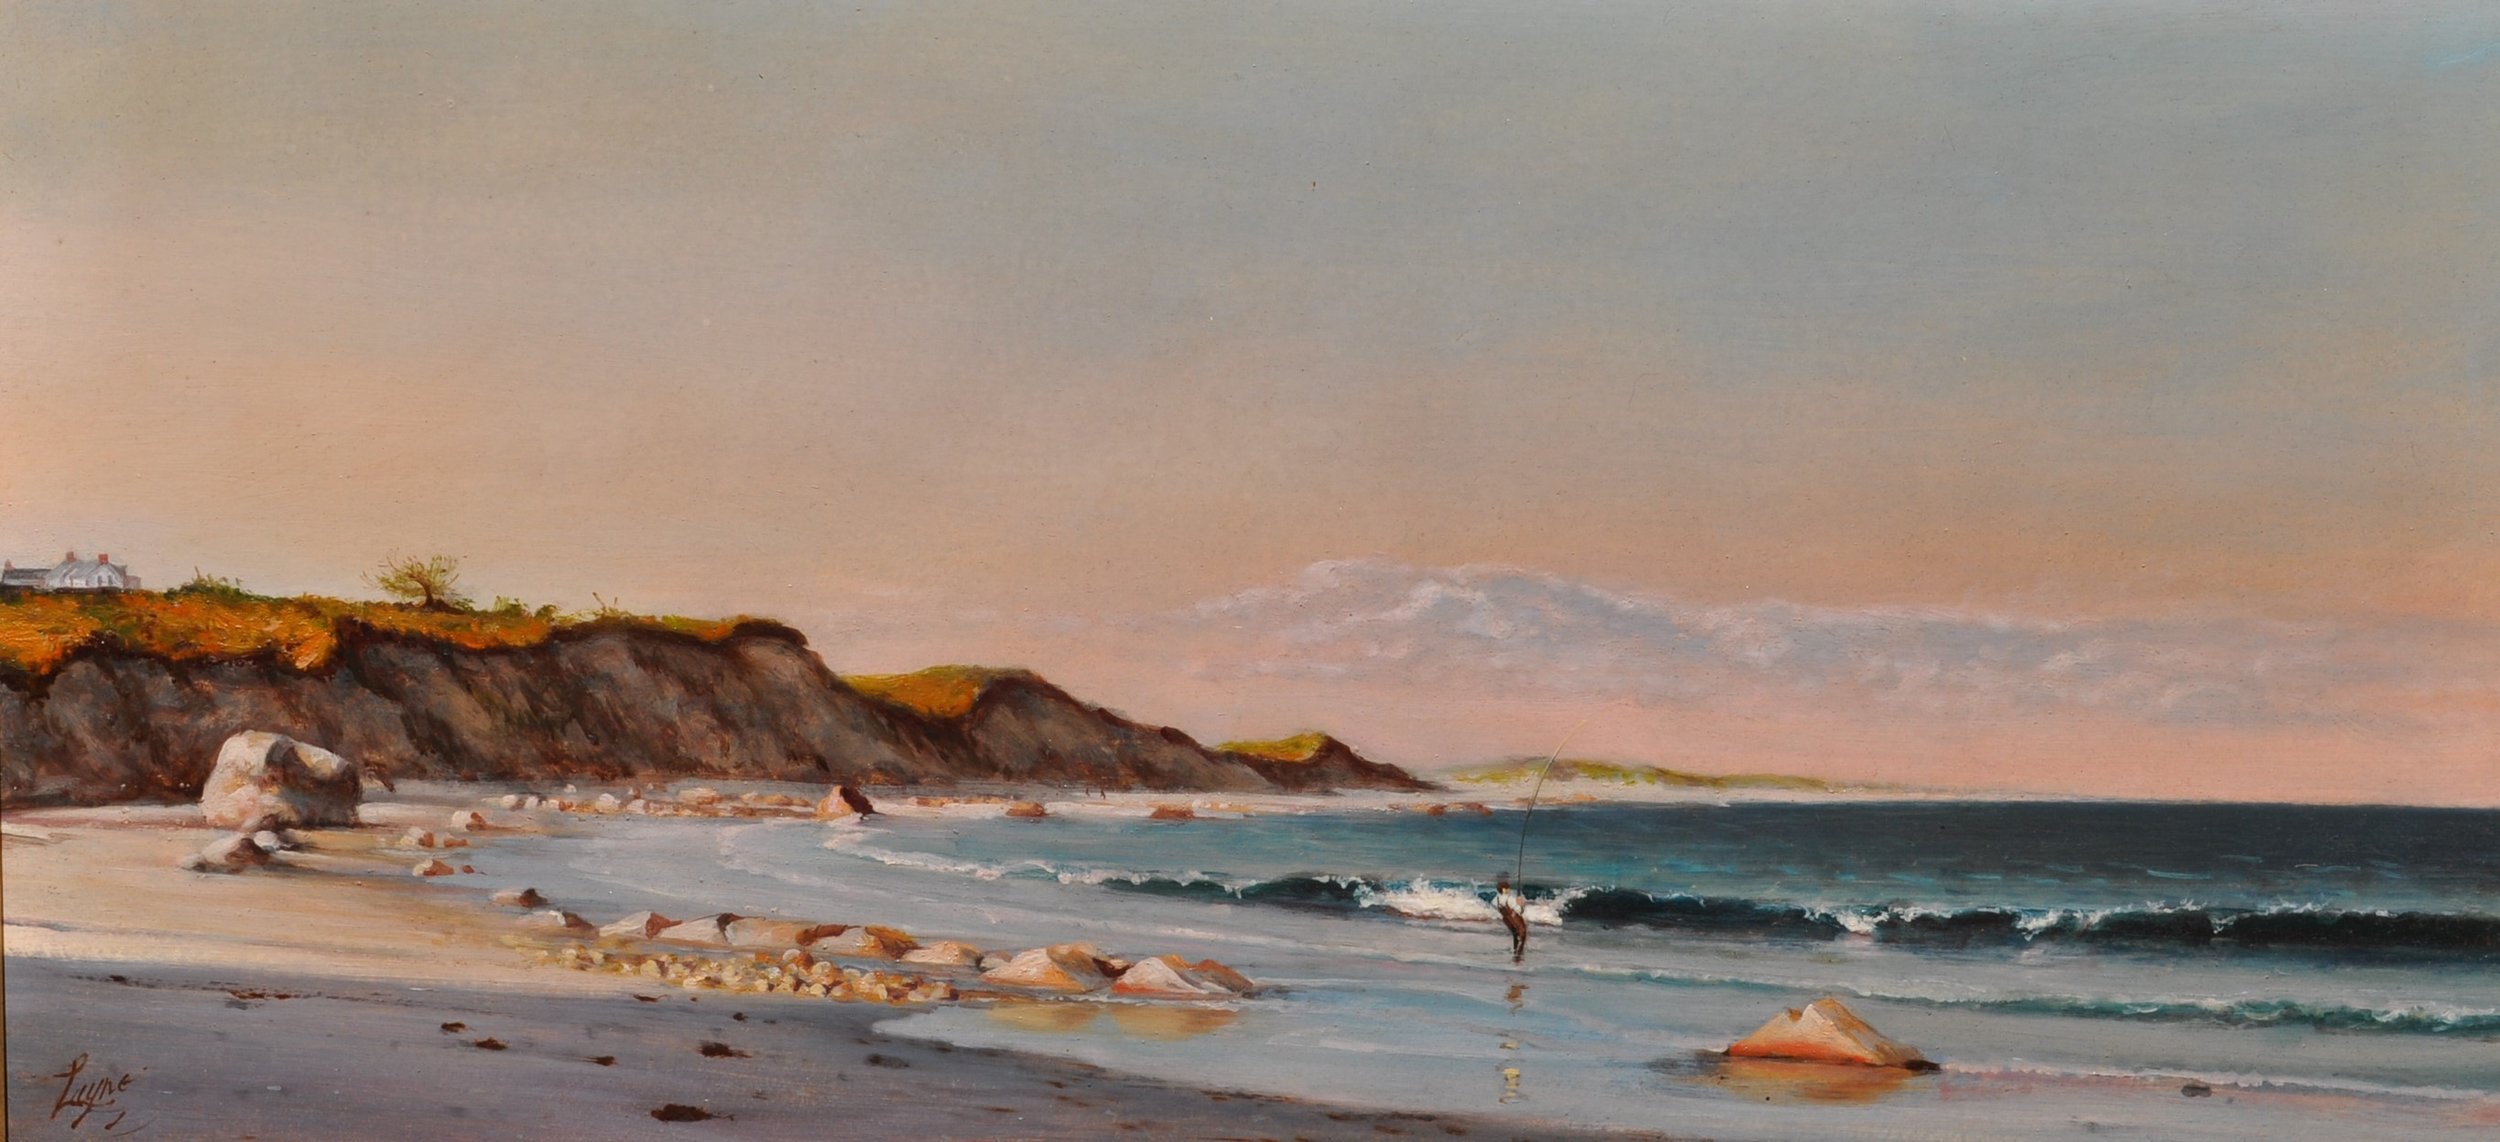 PETER ARGUIMBAU    Surfcaster    Along the beach of Lucy Vincent in the town of Chilmark, MA a fisher tries his luck in the rocky surf.  20 x 40 inches